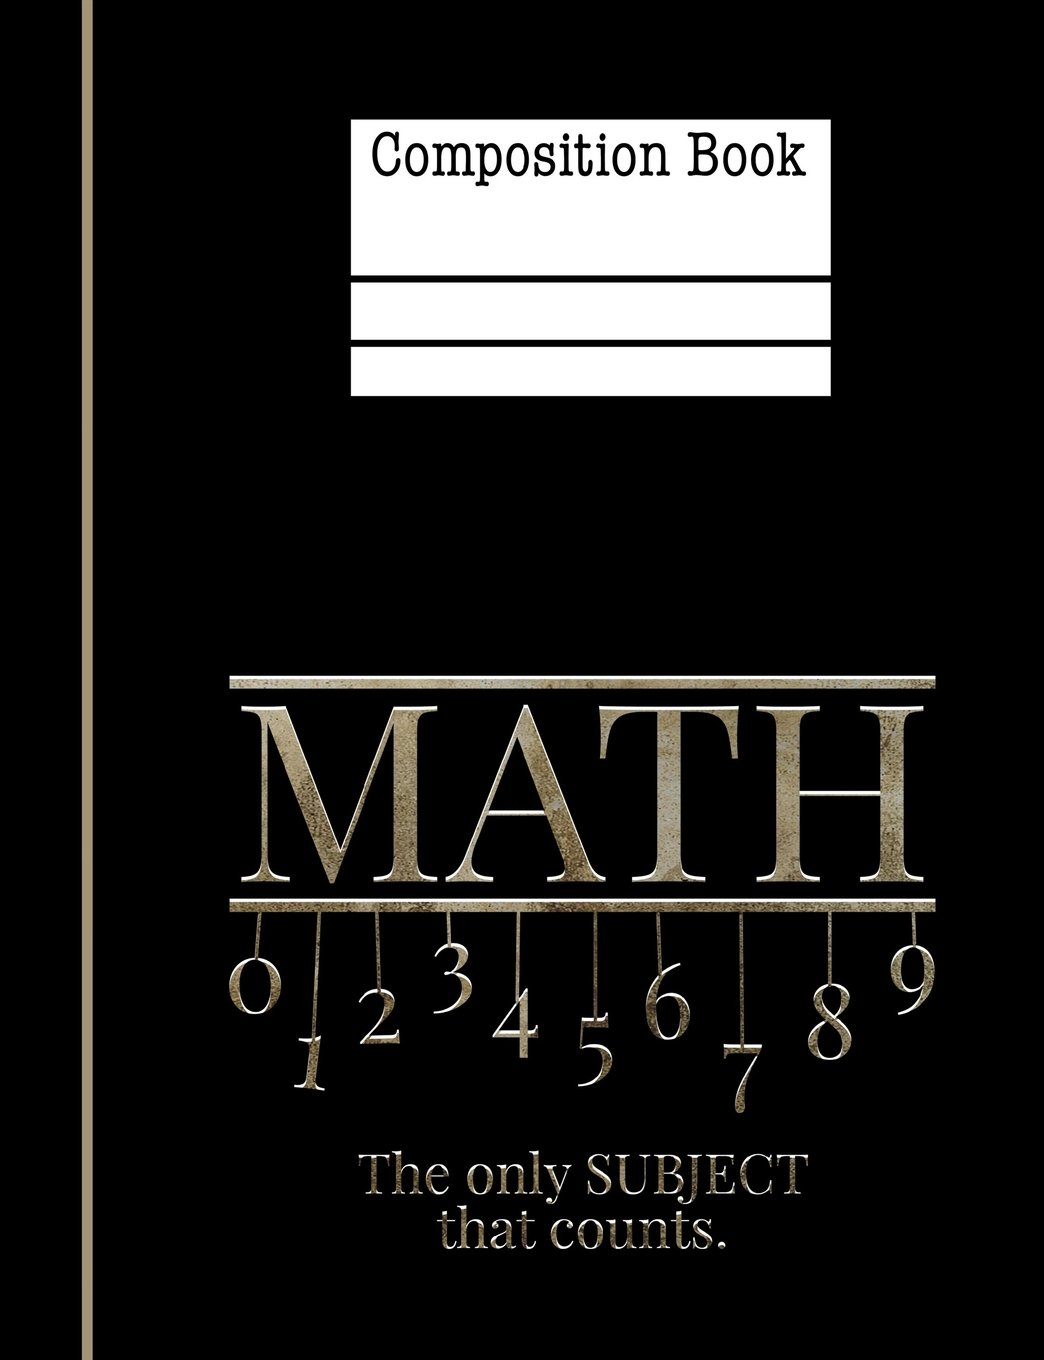 Math The Only Subject That Counts Composition Notebook - Hexagonal 0.5 Inch: 7.44 x 9.69 - 200 Pages - 1/2 Inch Hexagonal Graph Paper - School Student Teacher Office pdf